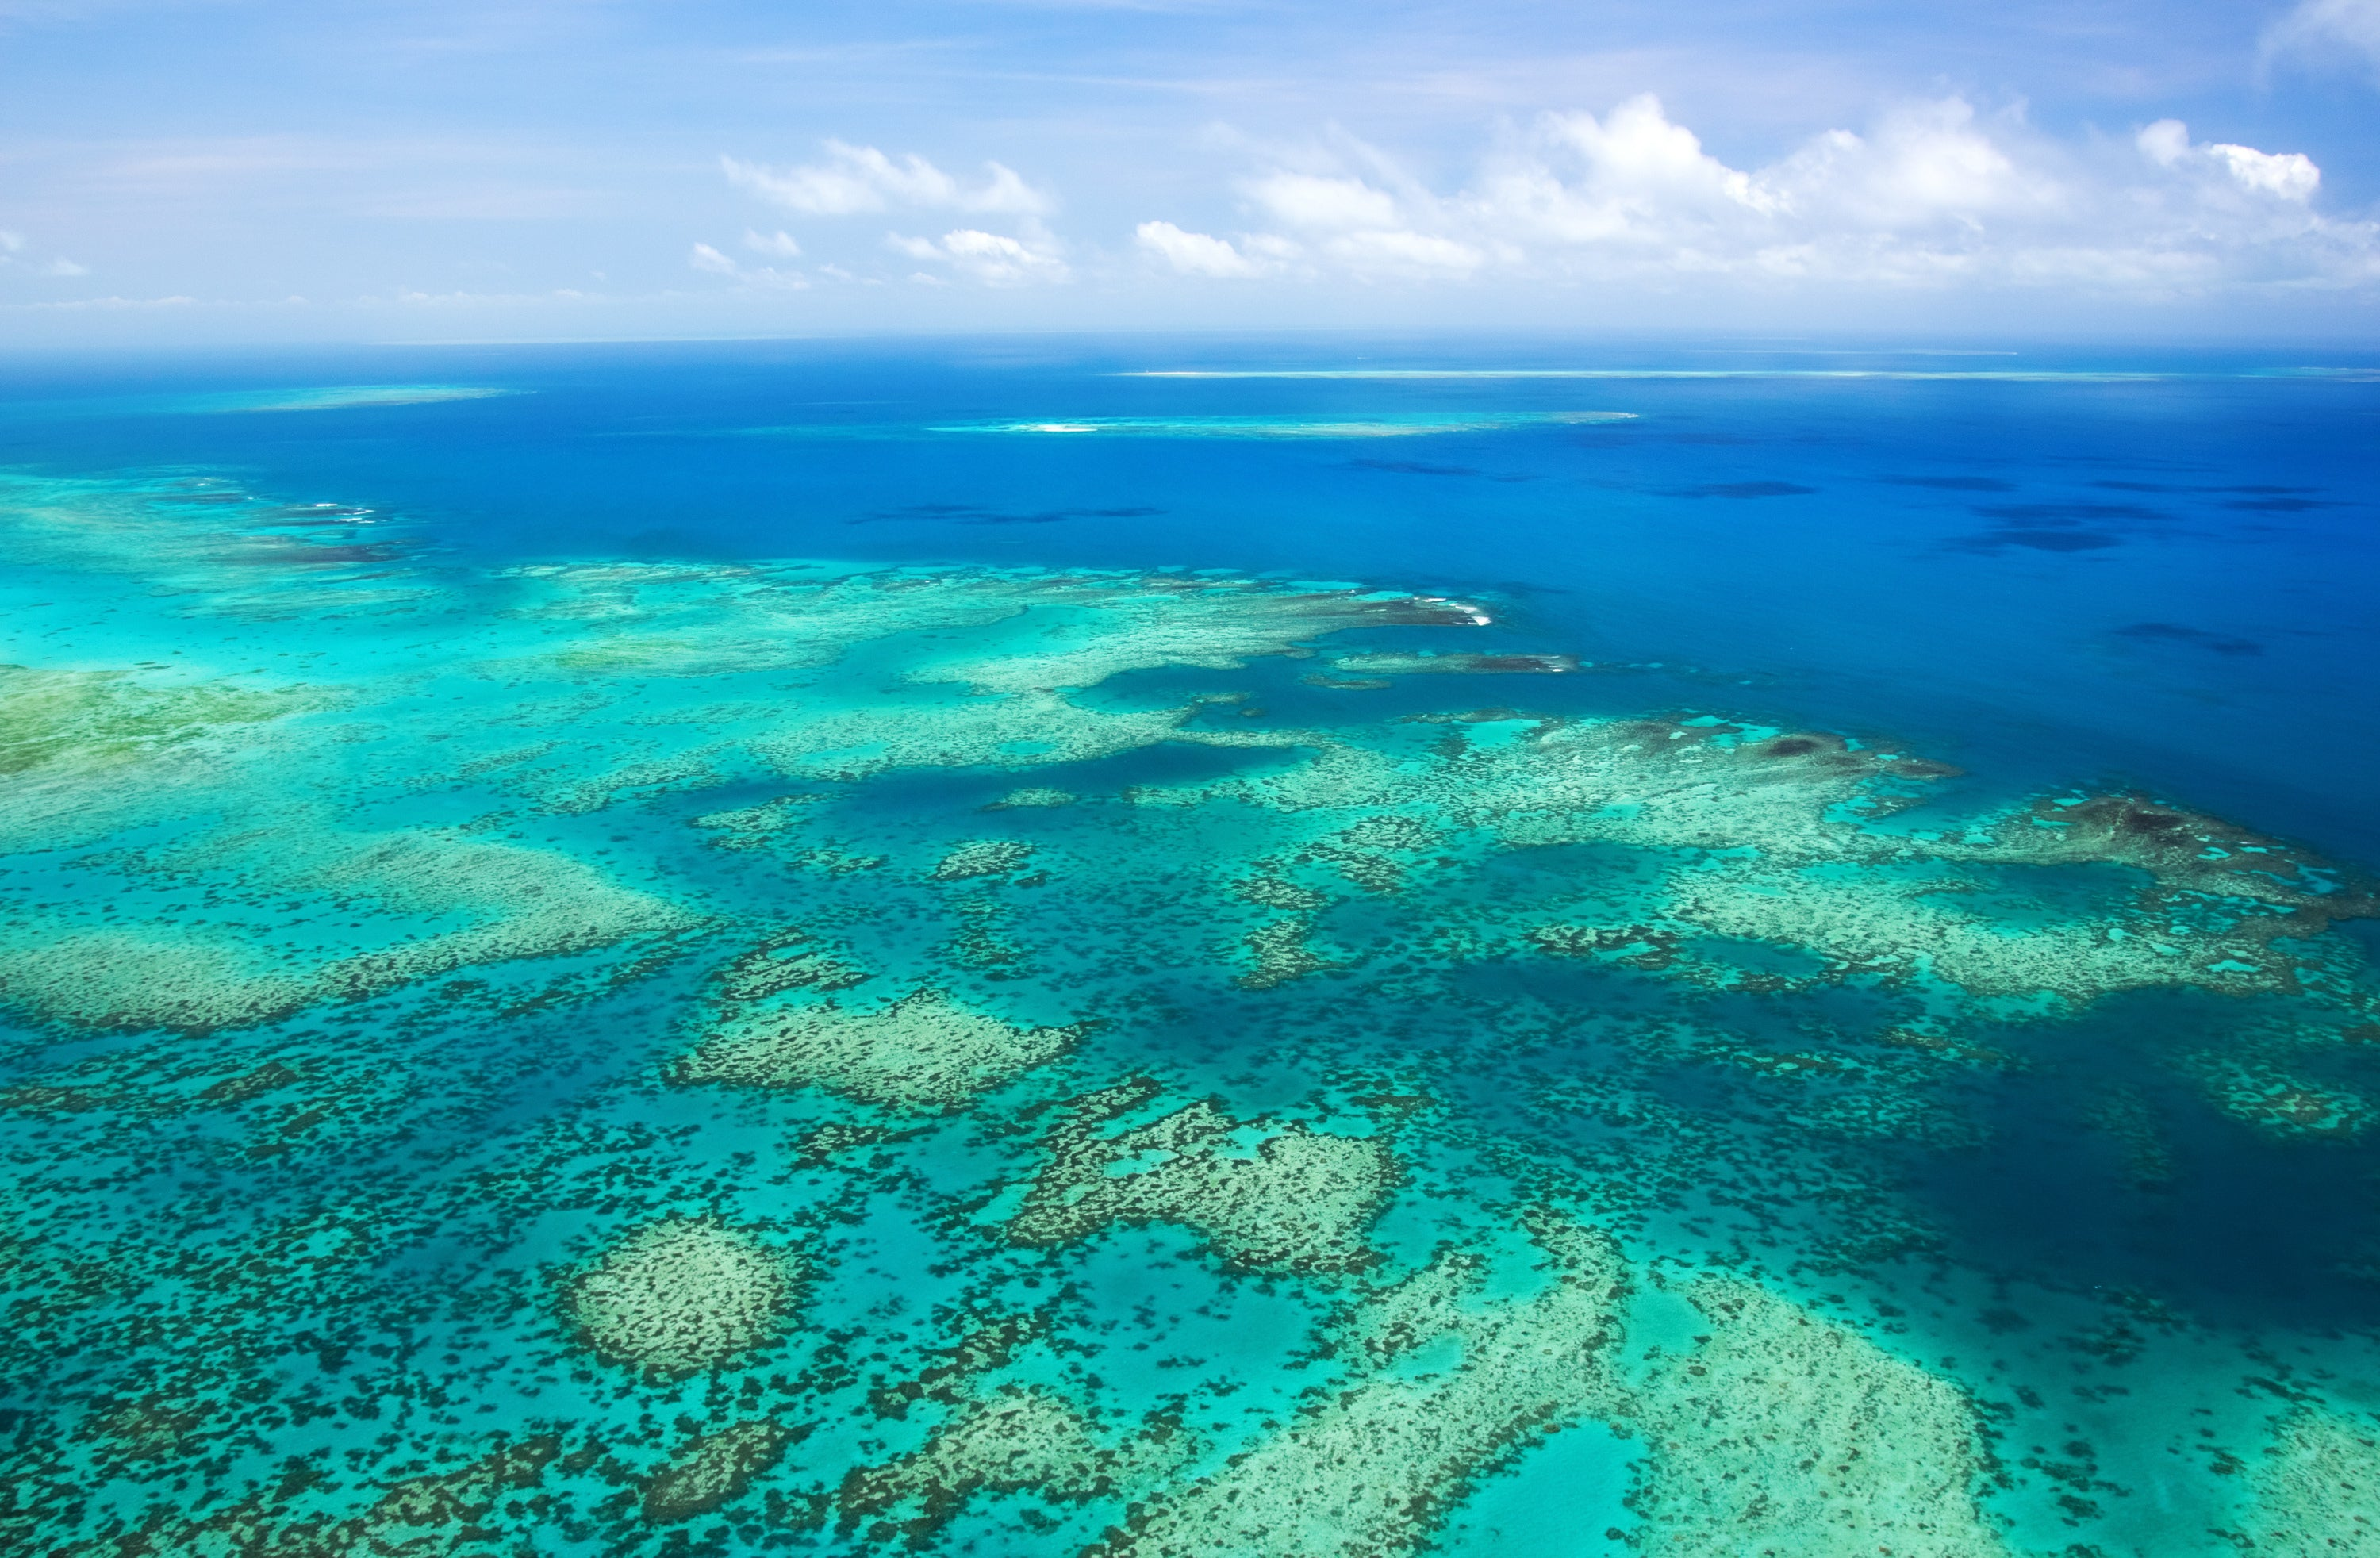 Ariel shot of coral reef in blue water.